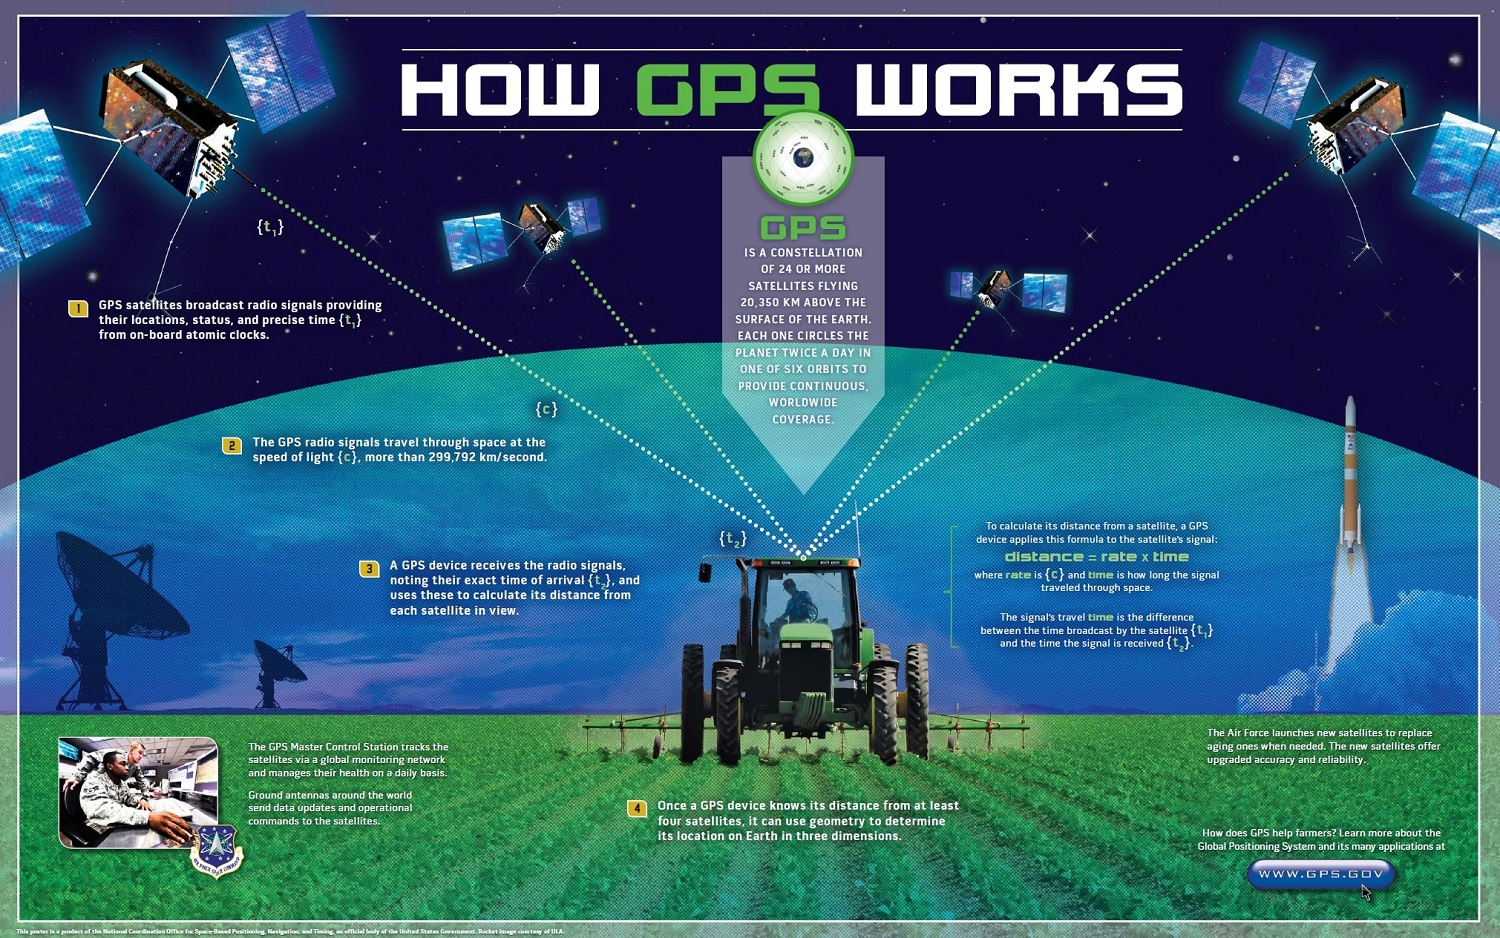 How GPS Works poster